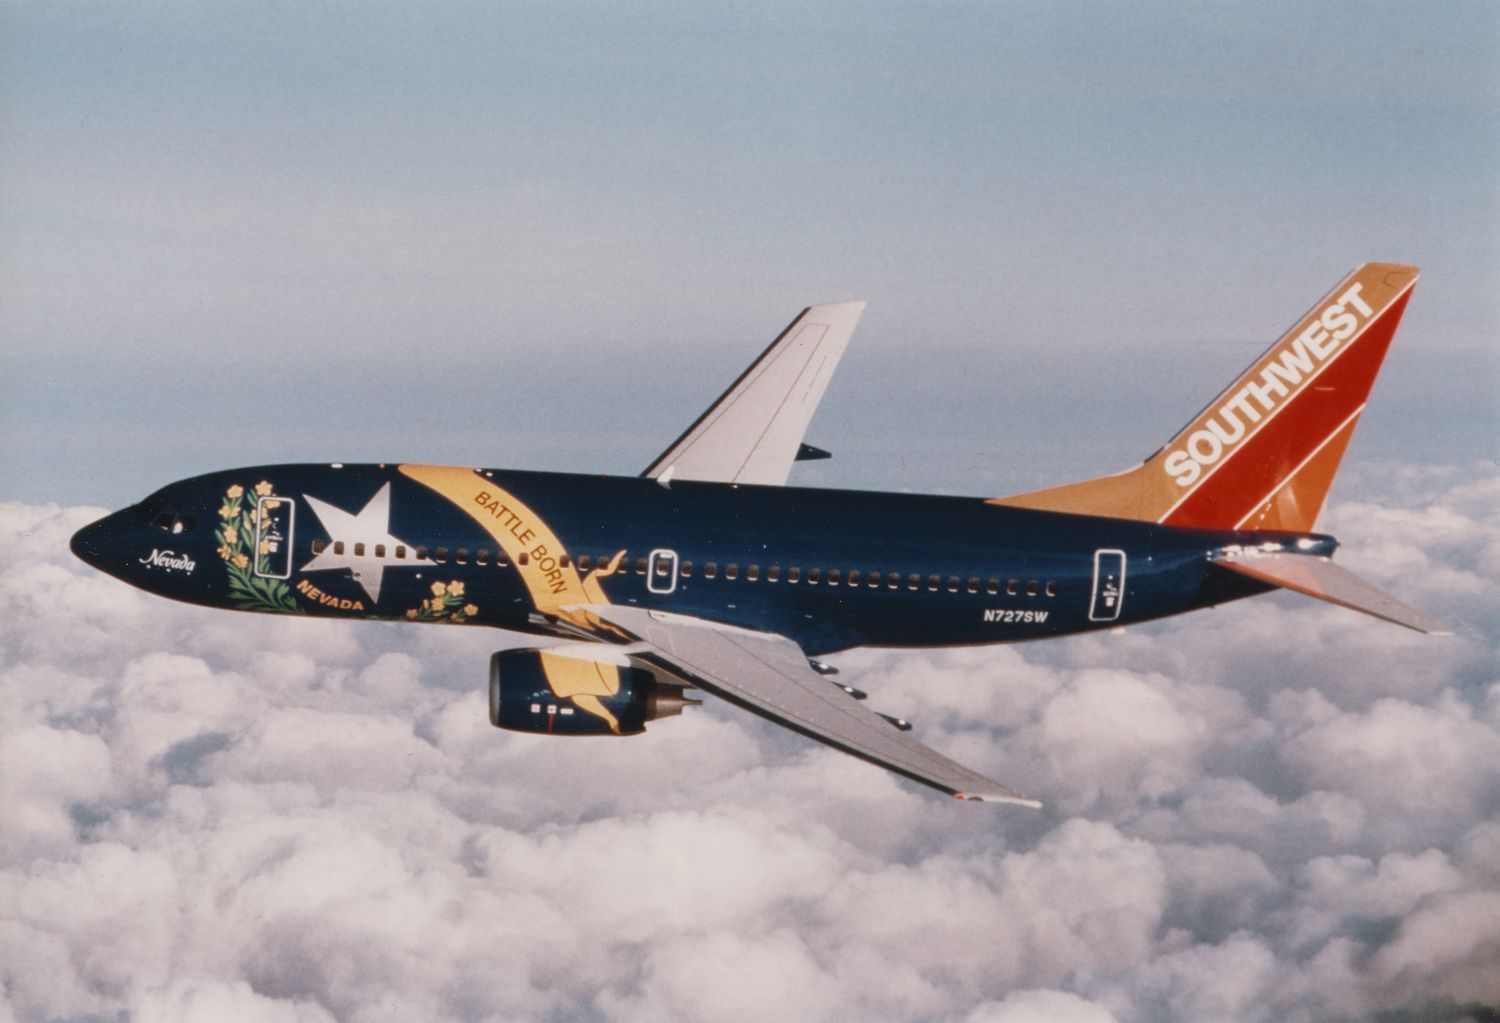 Pin by Doug Hezlep on Classic Airliners in 2020 Lockheed